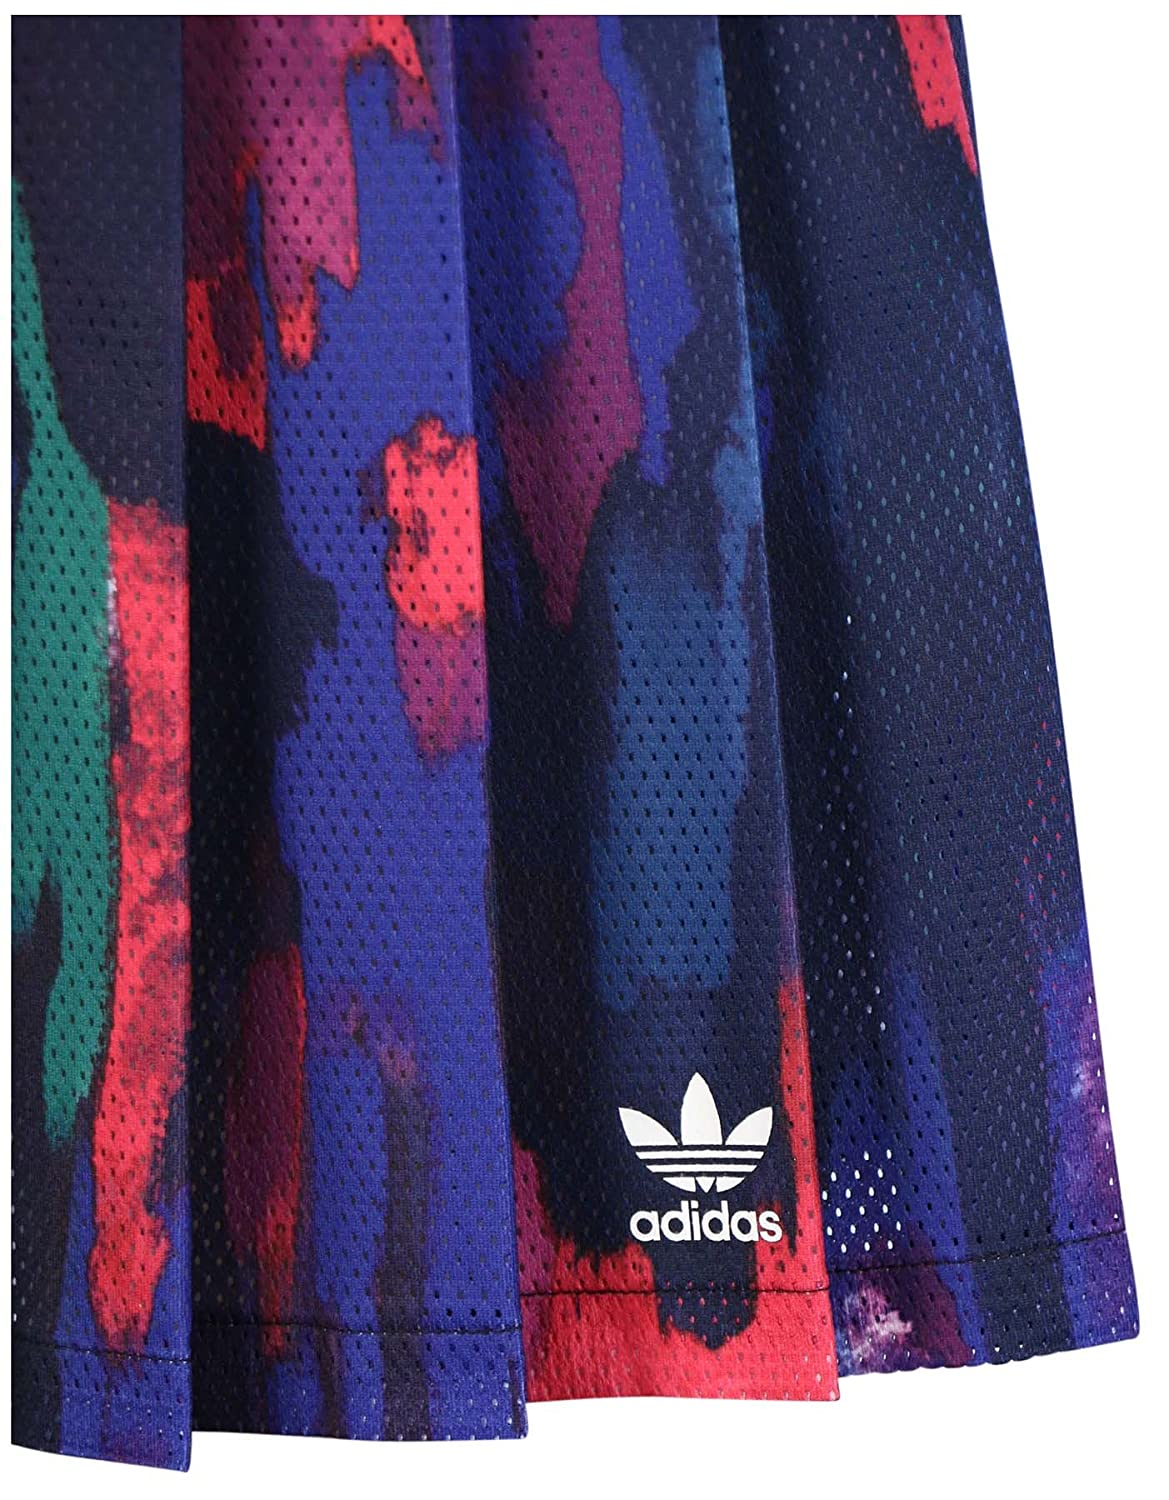 639a4ad0a4dee Adidas Pharrell Williams Camouflage Tree Women s Skirt Multi Color ao3161  at Amazon Women s Clothing store